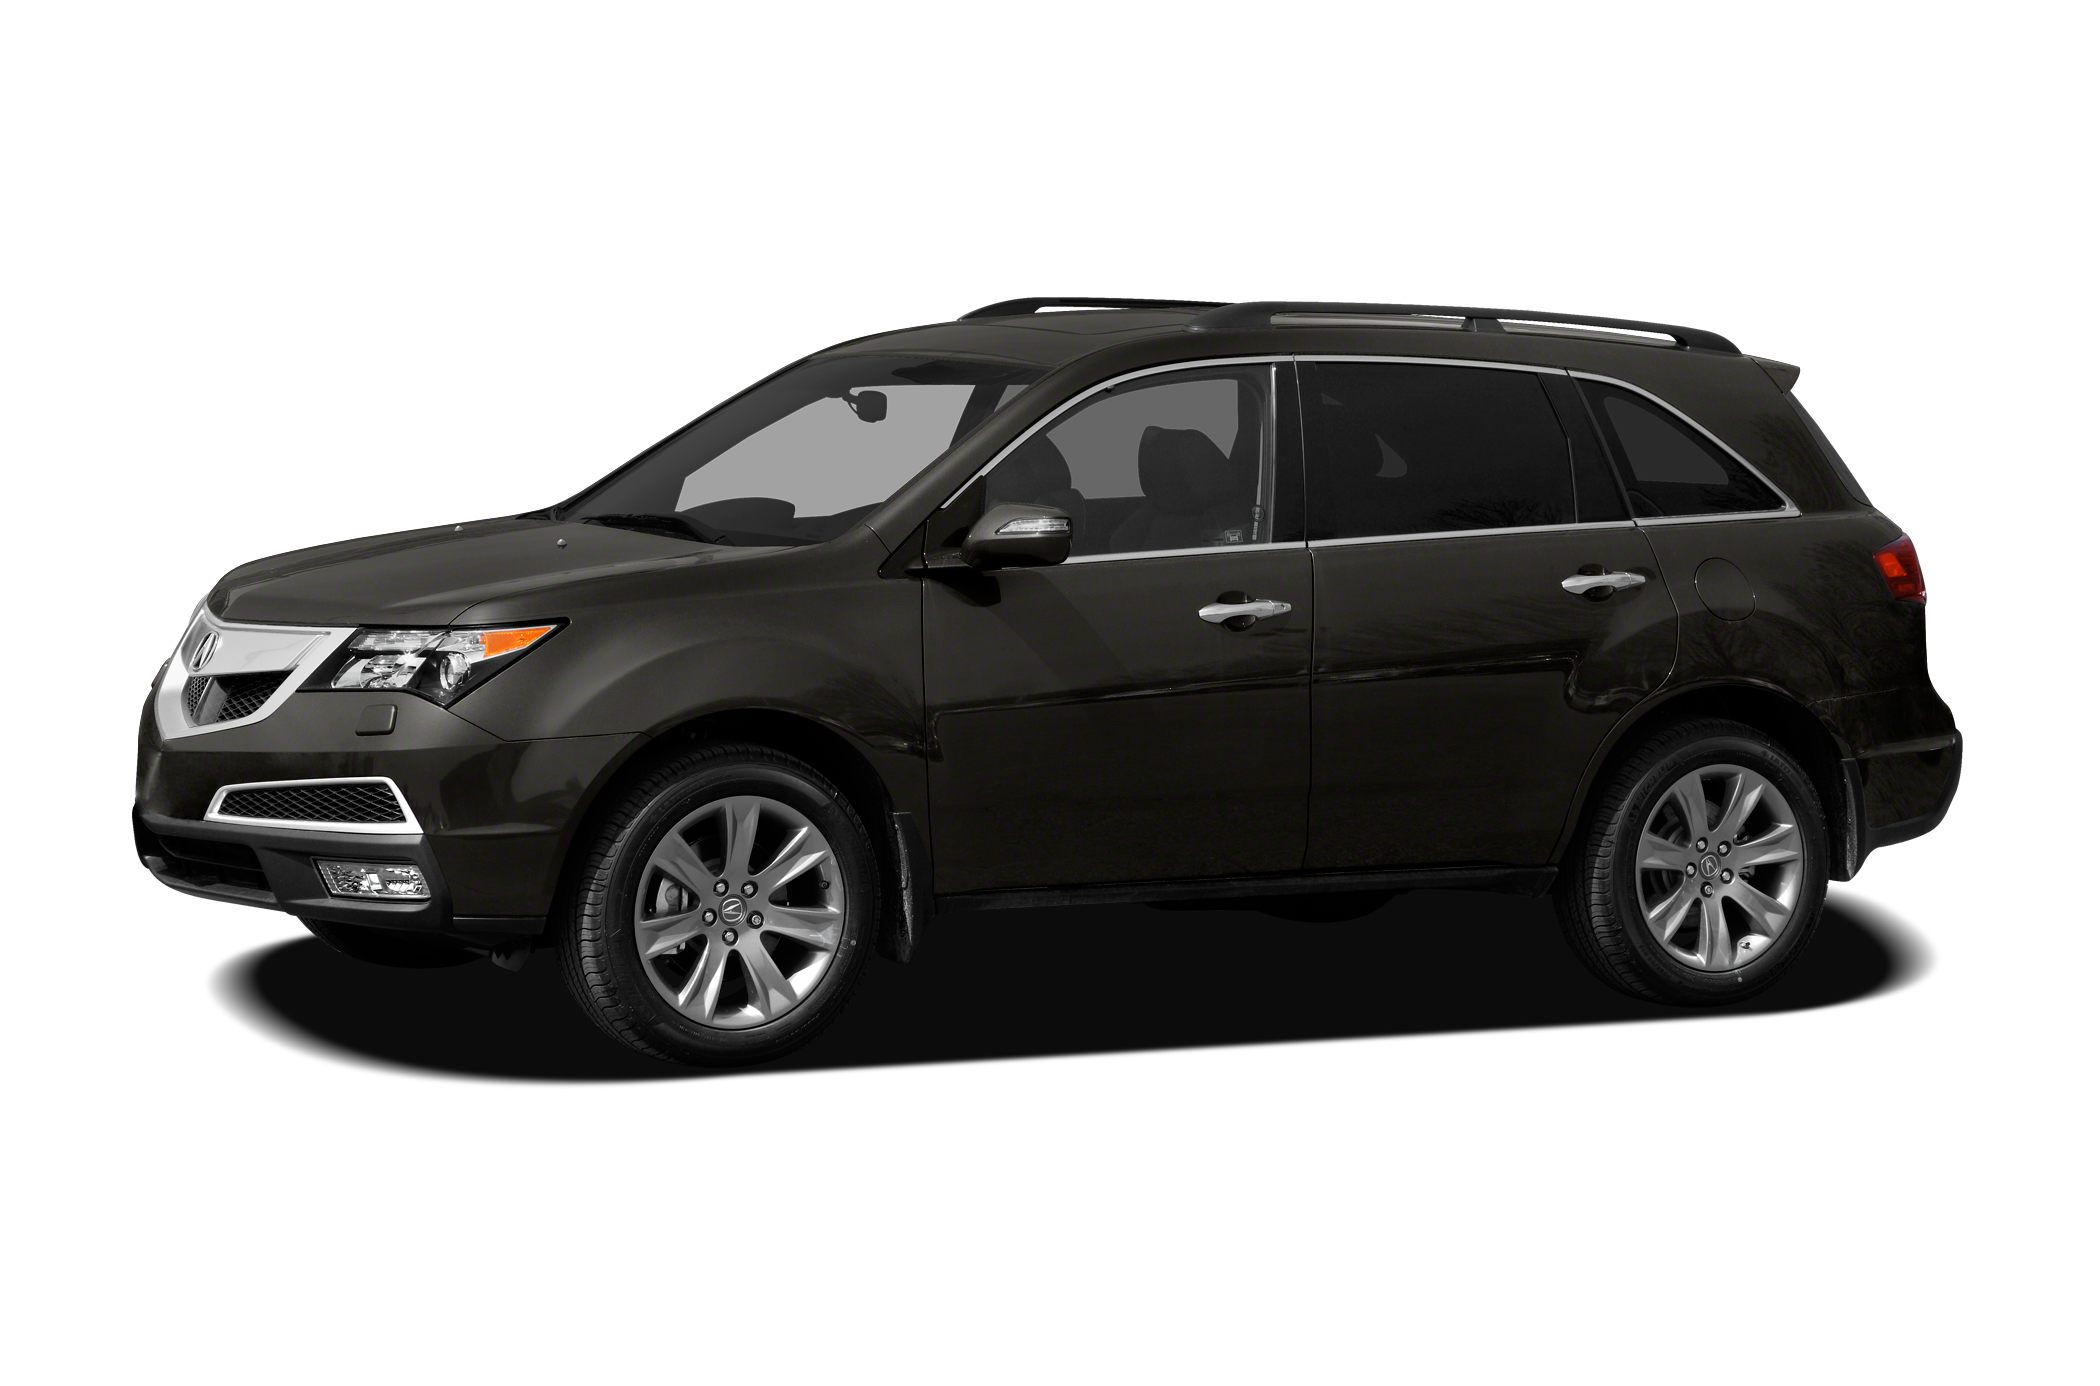 2011 Acura MDX 3.7L Technology SUV for sale in Memphis for $23,900 with 95,161 miles.